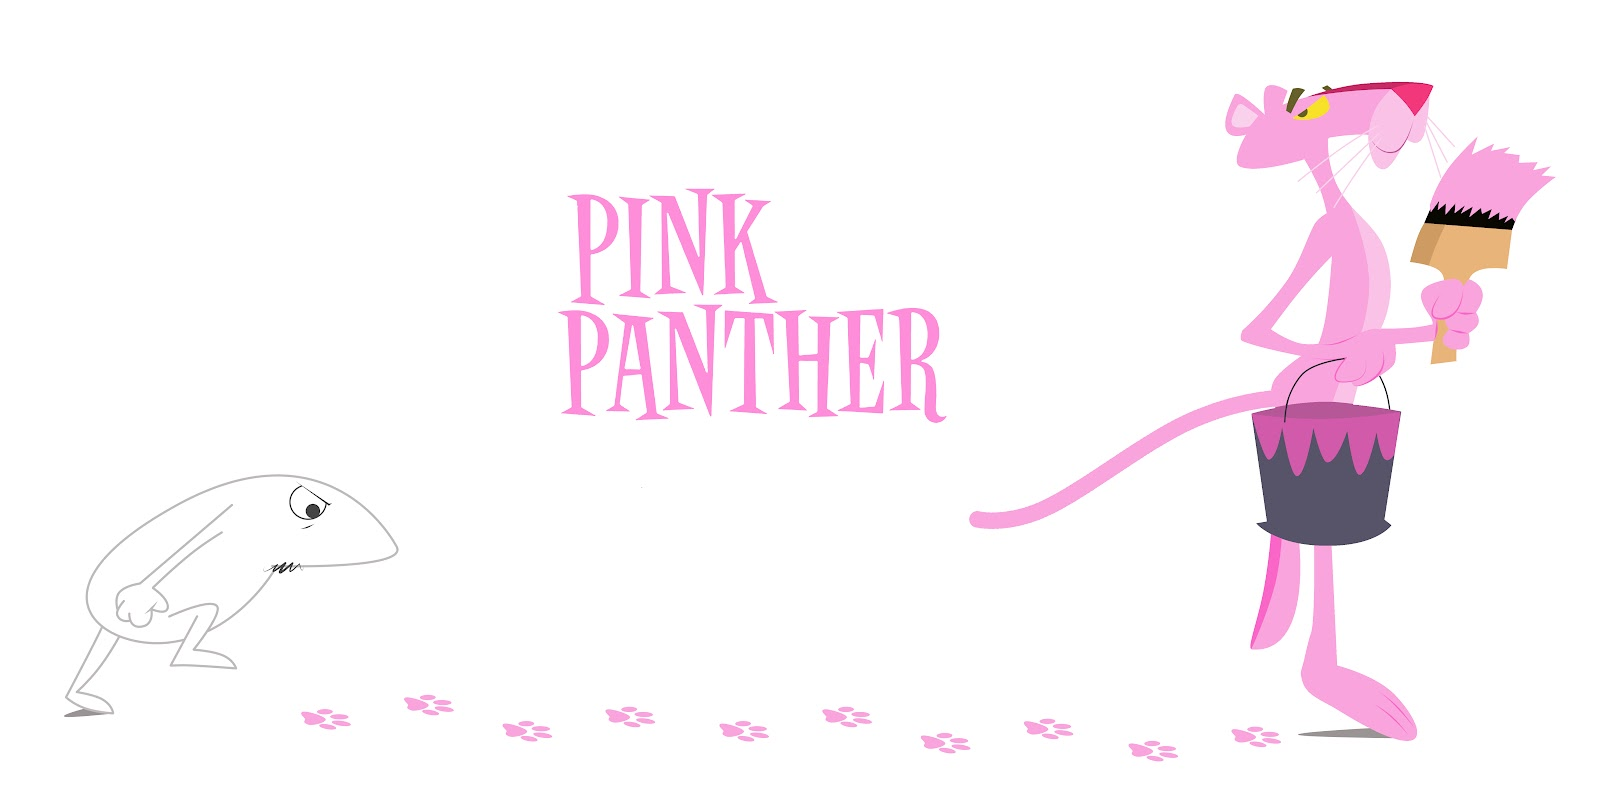 Pink Panther HD Wallpapers  Backgrounds  Wallpaper  1600x810